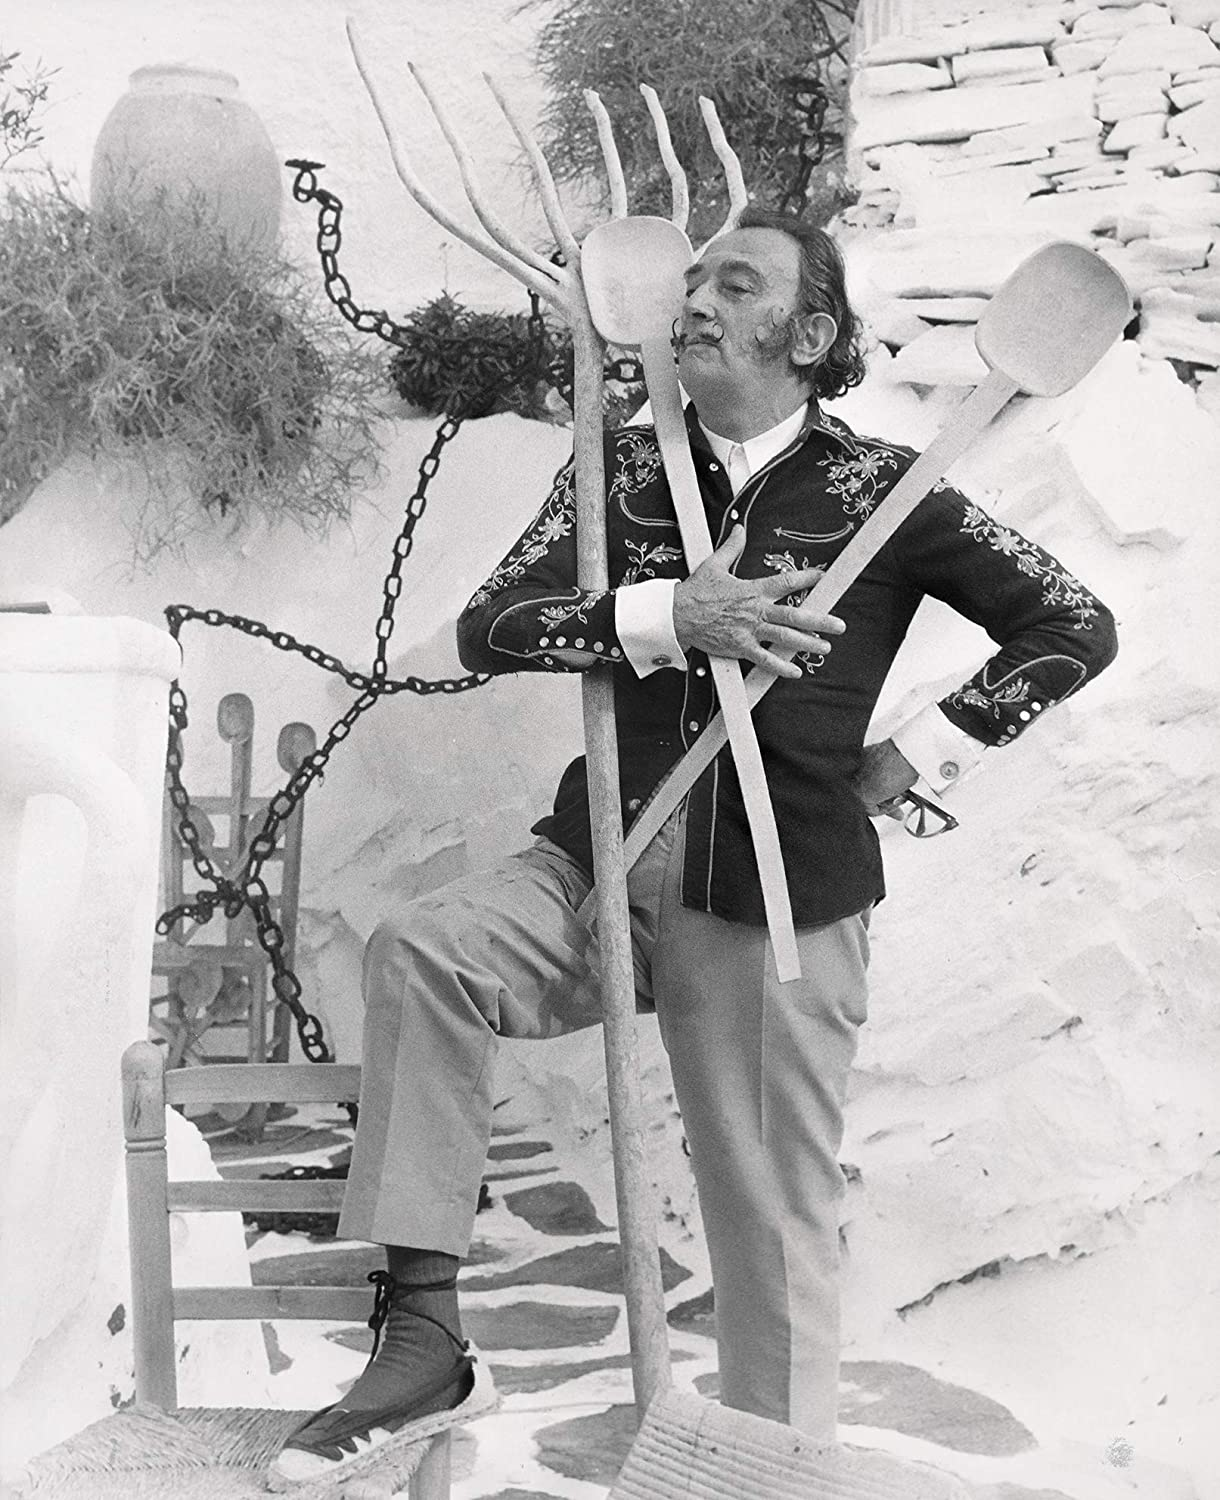 Celebrity Vault Salvador Dali: Surrealist in Real Life, an Archival Print - 24